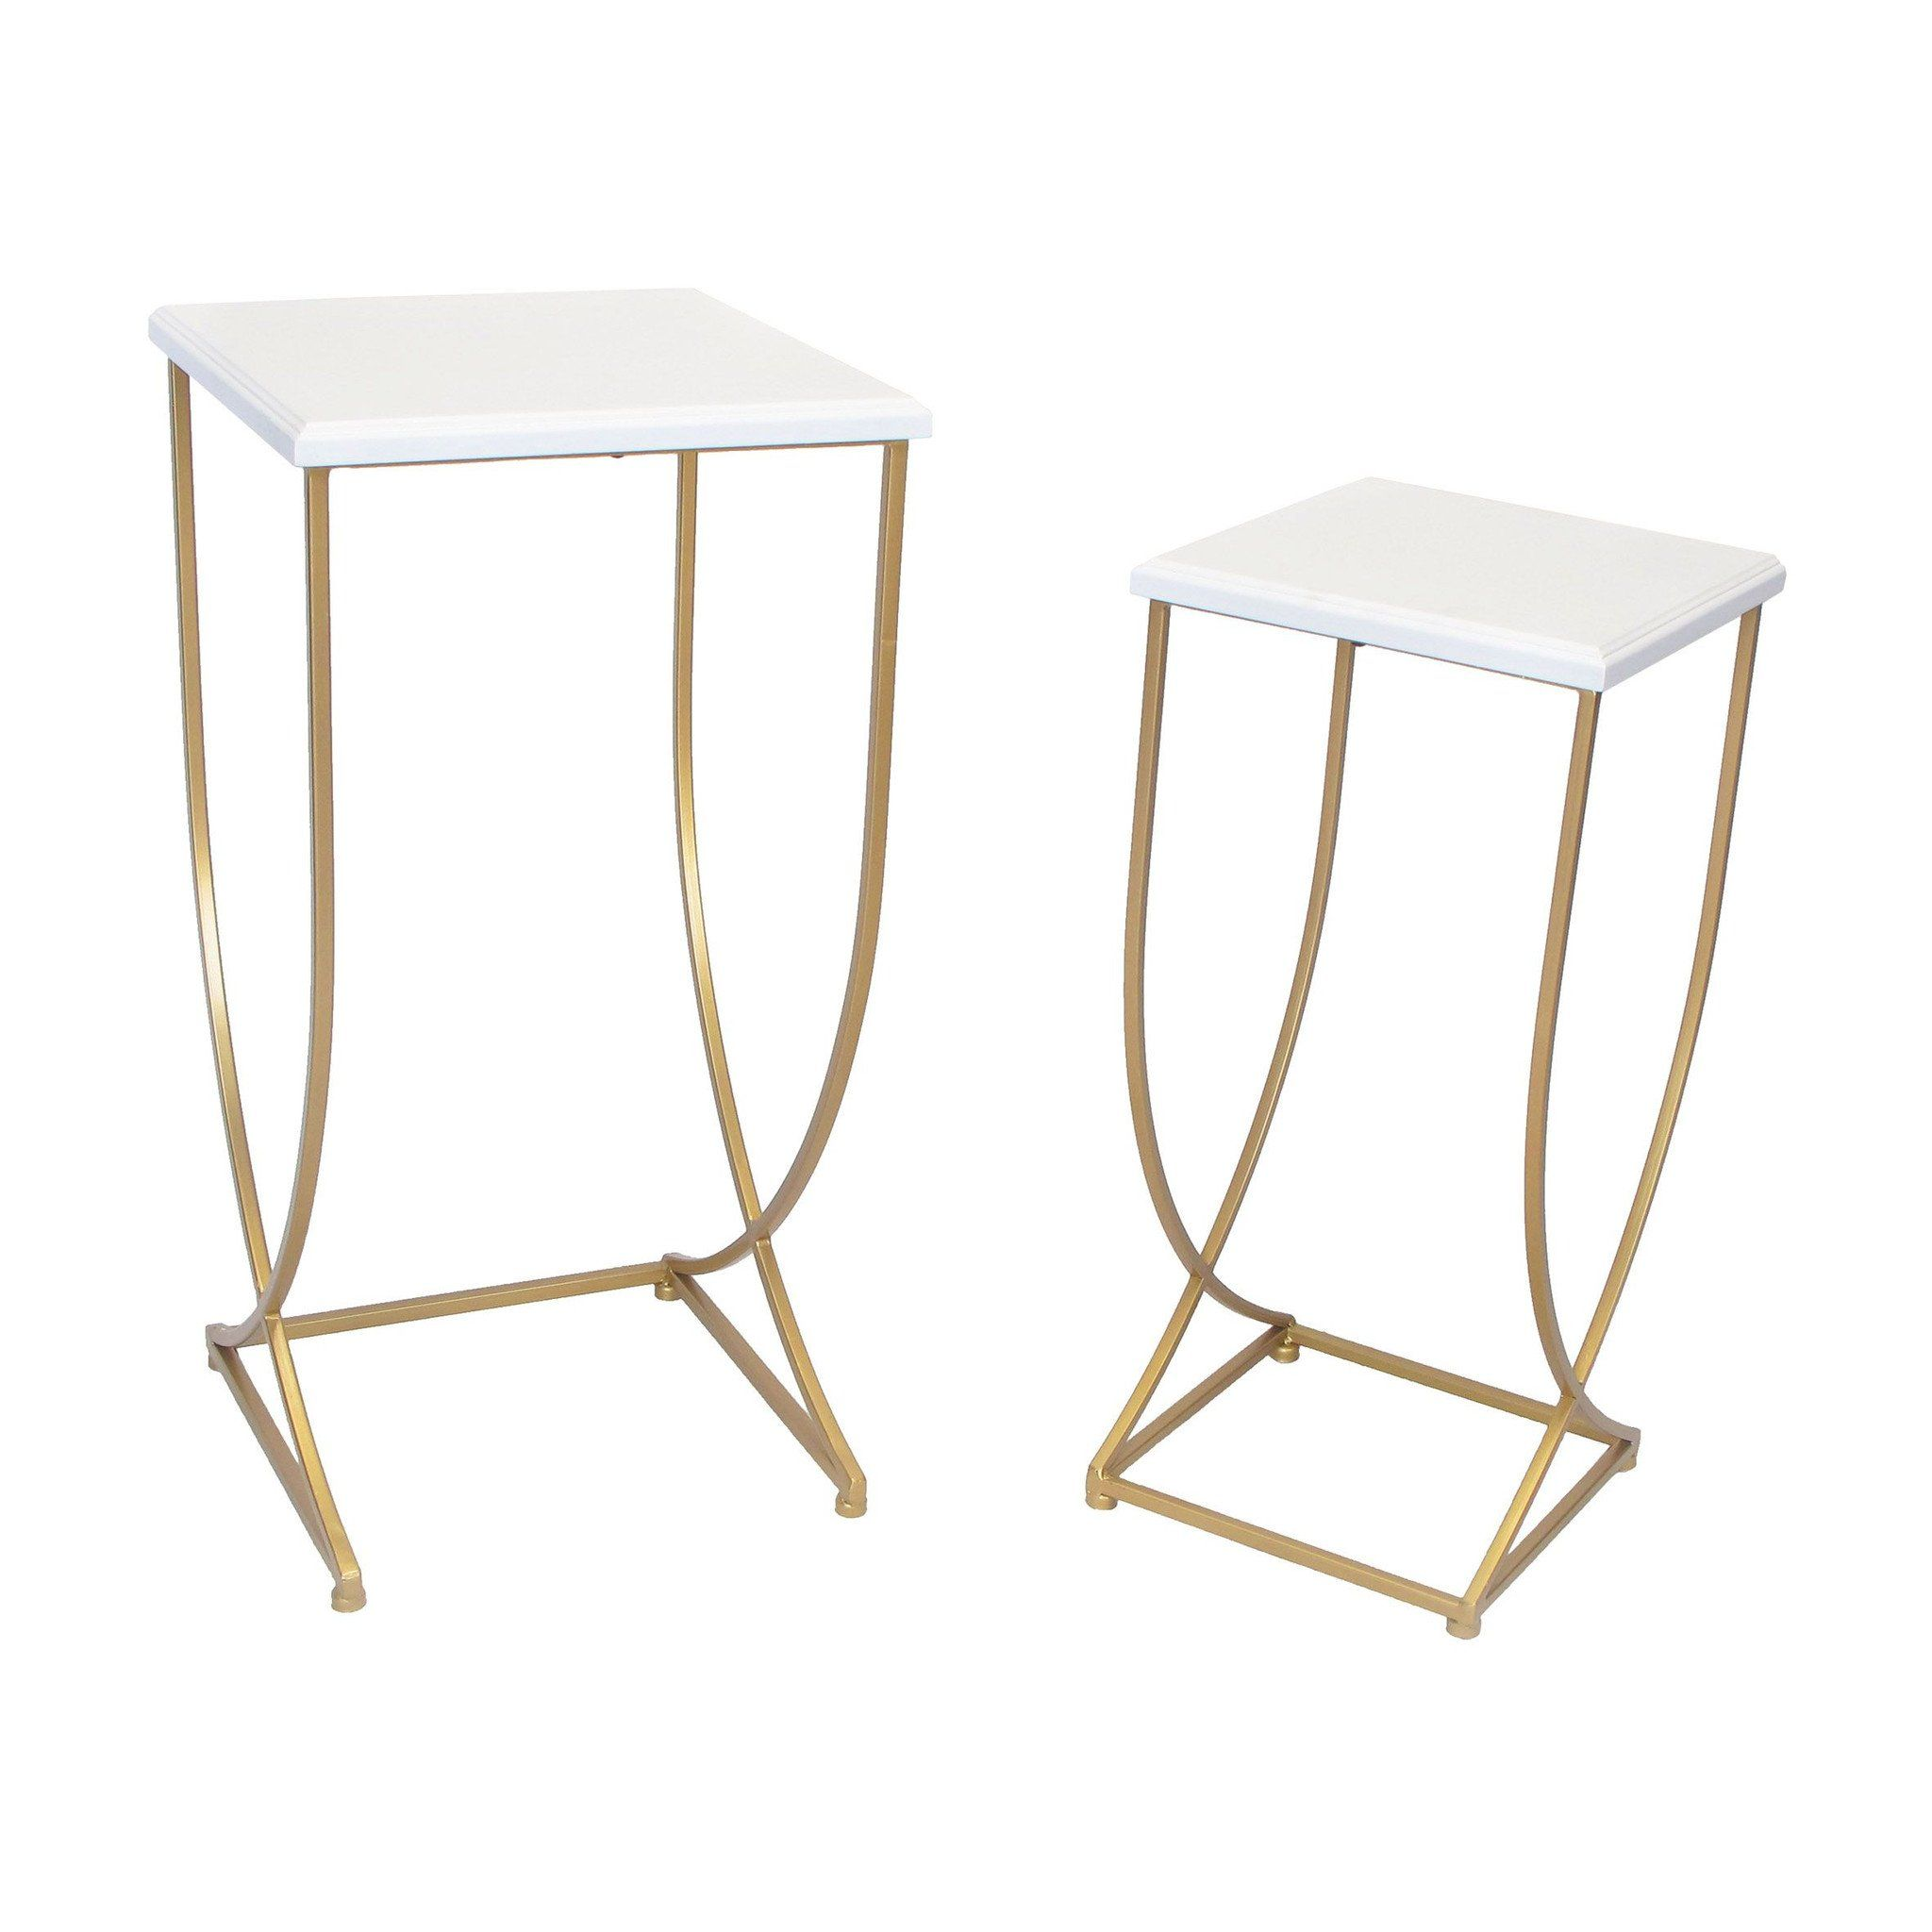 gold metal tall nesting side table set with white top everything accent pine nightstands bedroom target furniture coffee tablecloth inch round glass lamps for pallet bedside oval